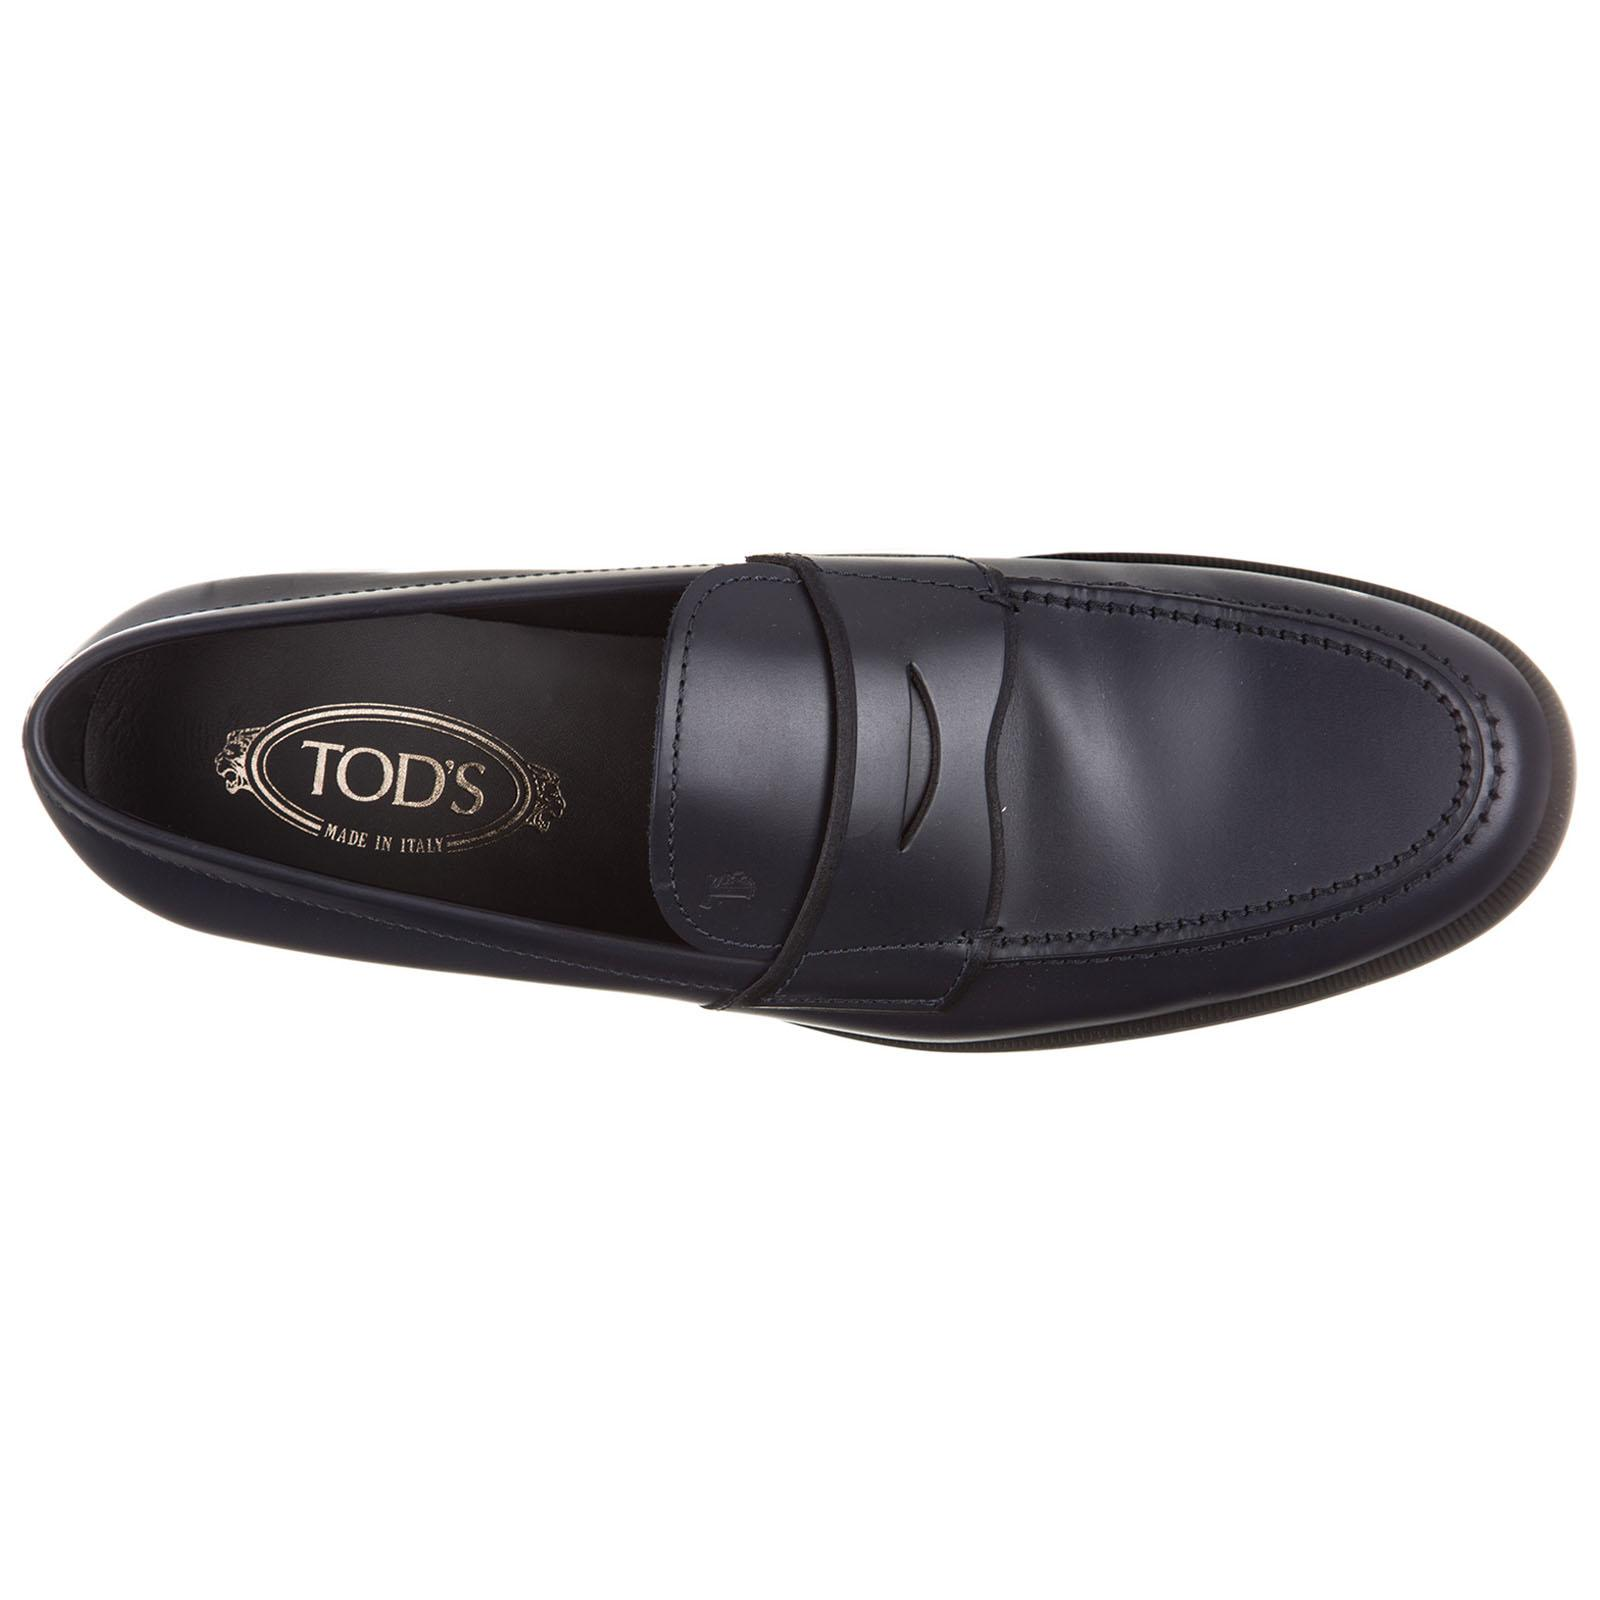 Tod's Leather Loafers Moccasins Fondo Light Xx in Blue for Men